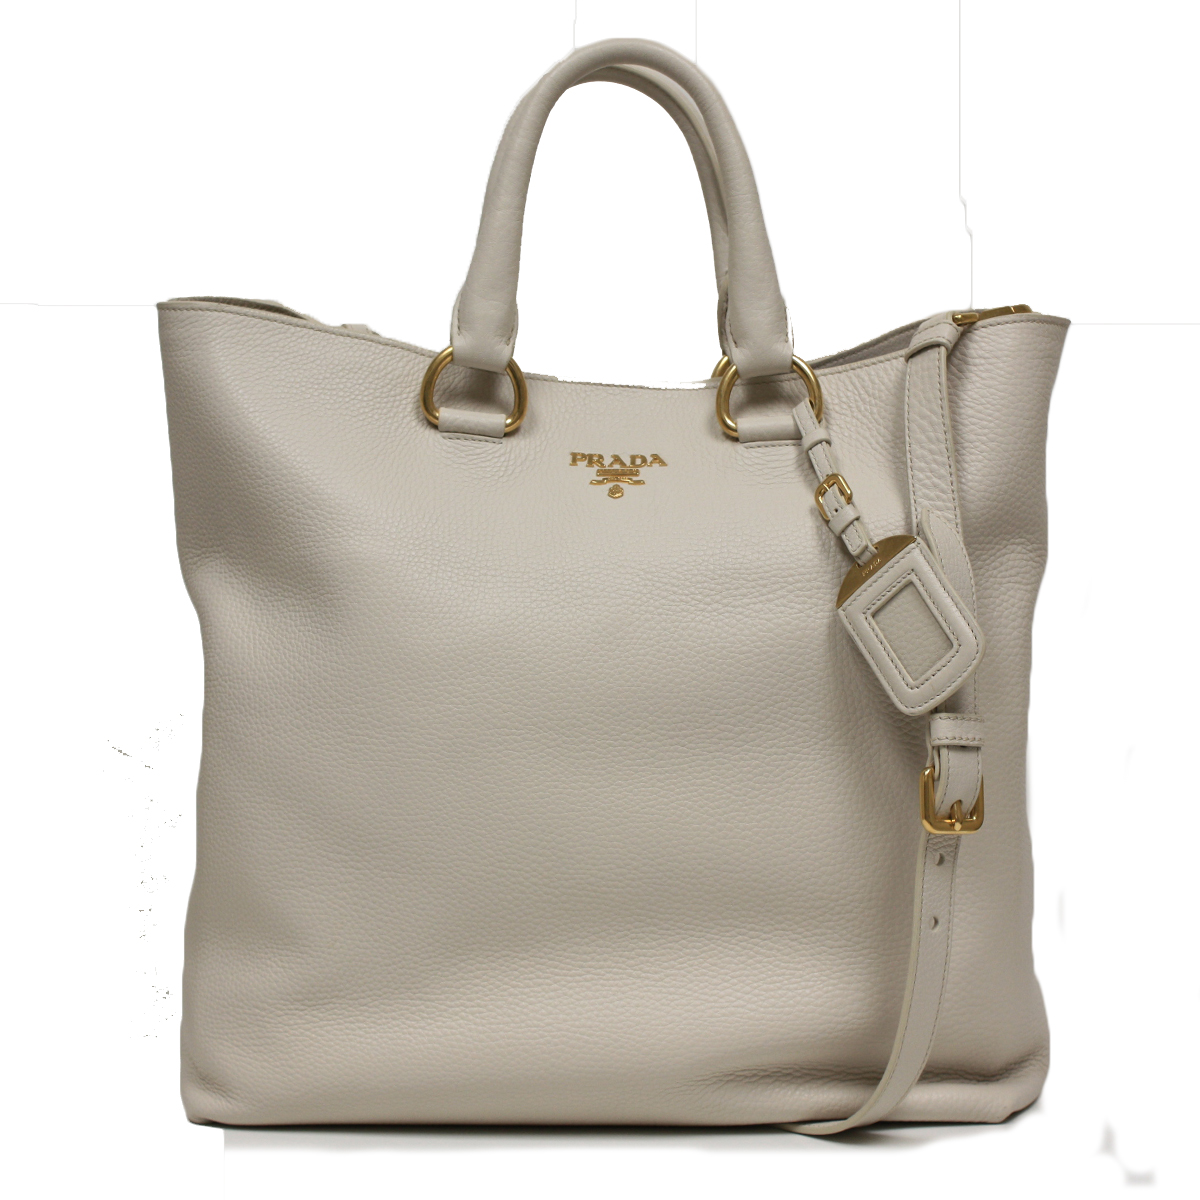 prada grey leather shoulder shopping bag tote prada bag